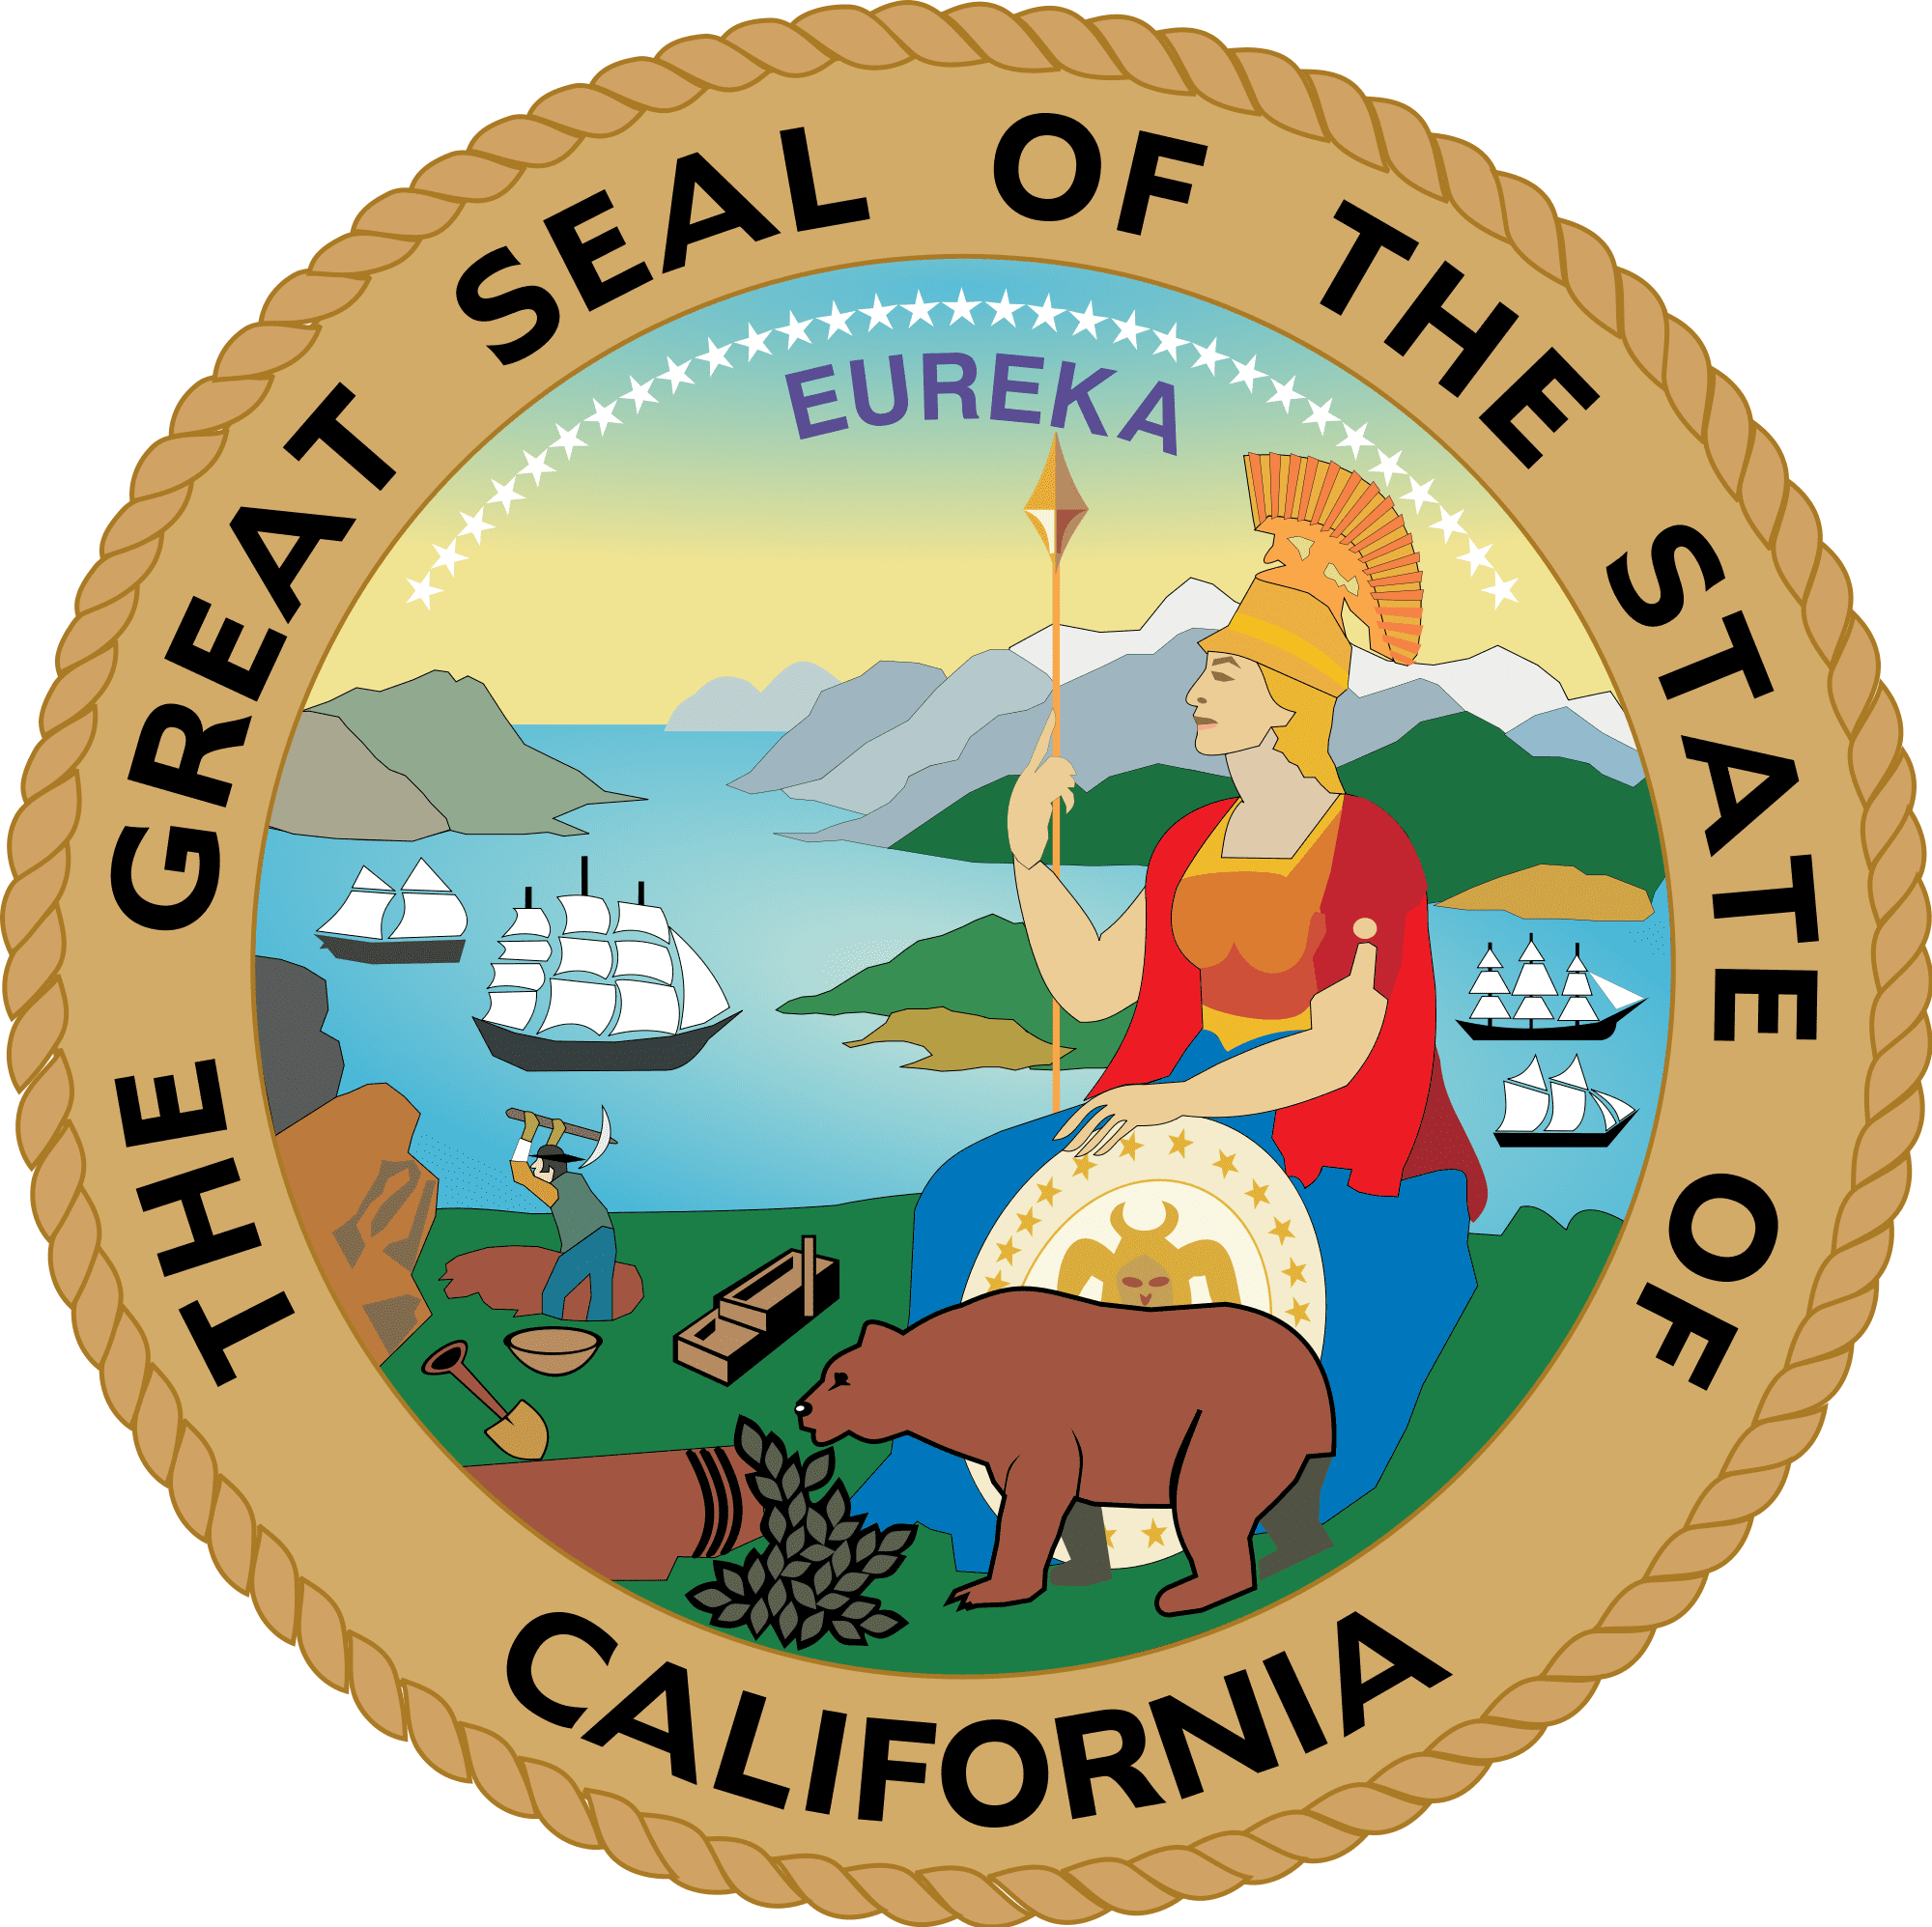 Free california power of attorney forms in fillable pdf 9 types free california power of attorney forms in fillable pdf 9 types falaconquin